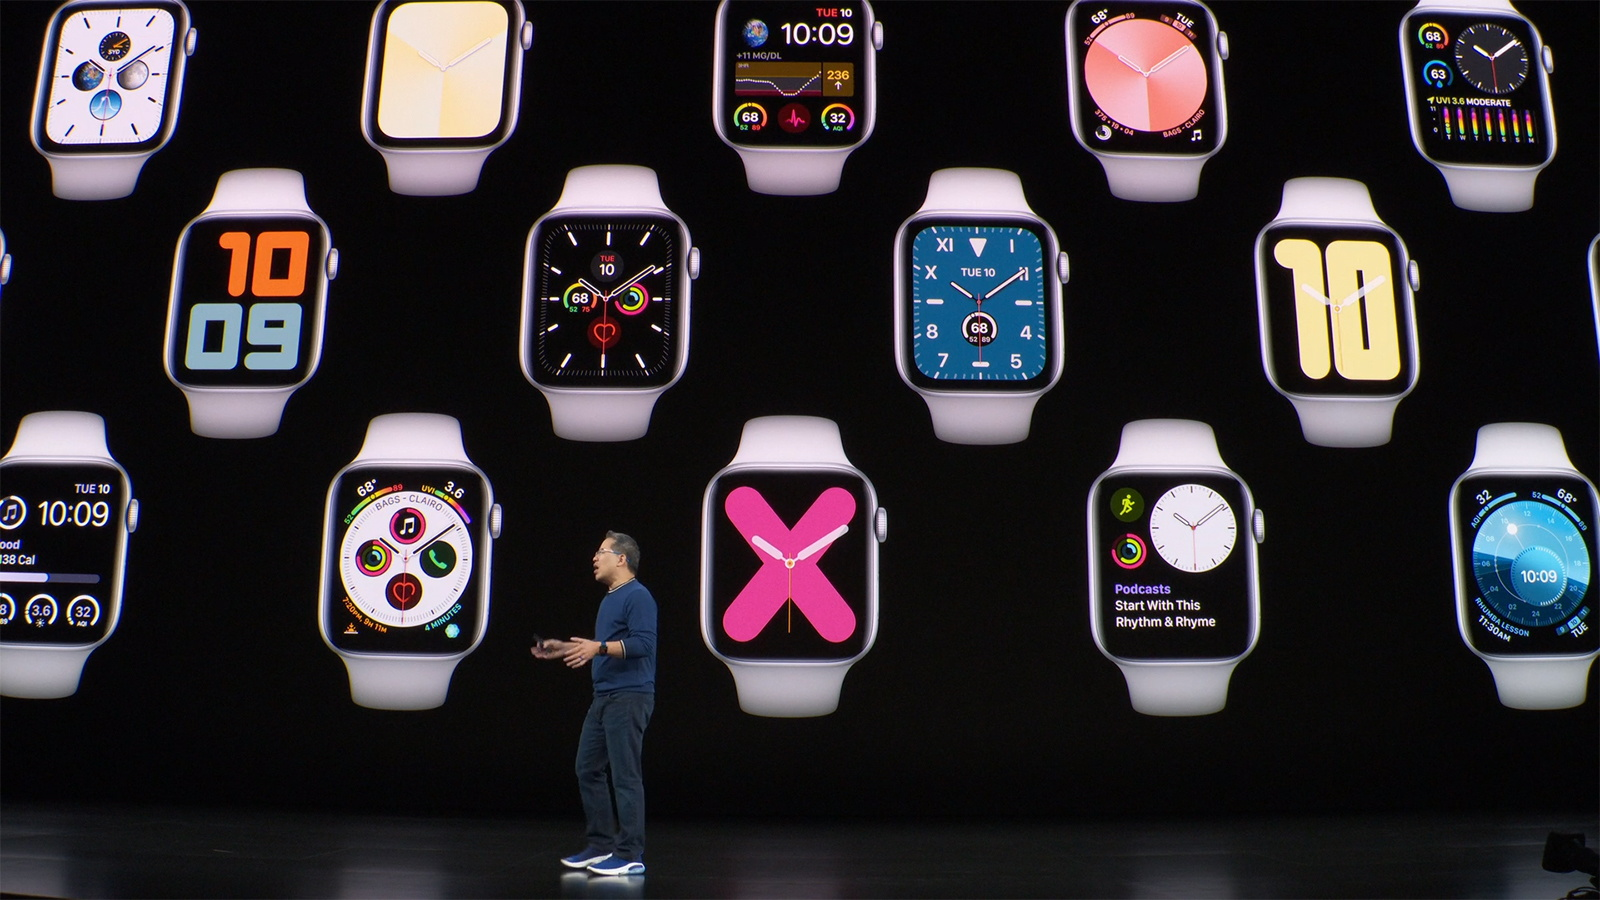 What's The Difference Between Apple Watch Series 5 & Series 3?